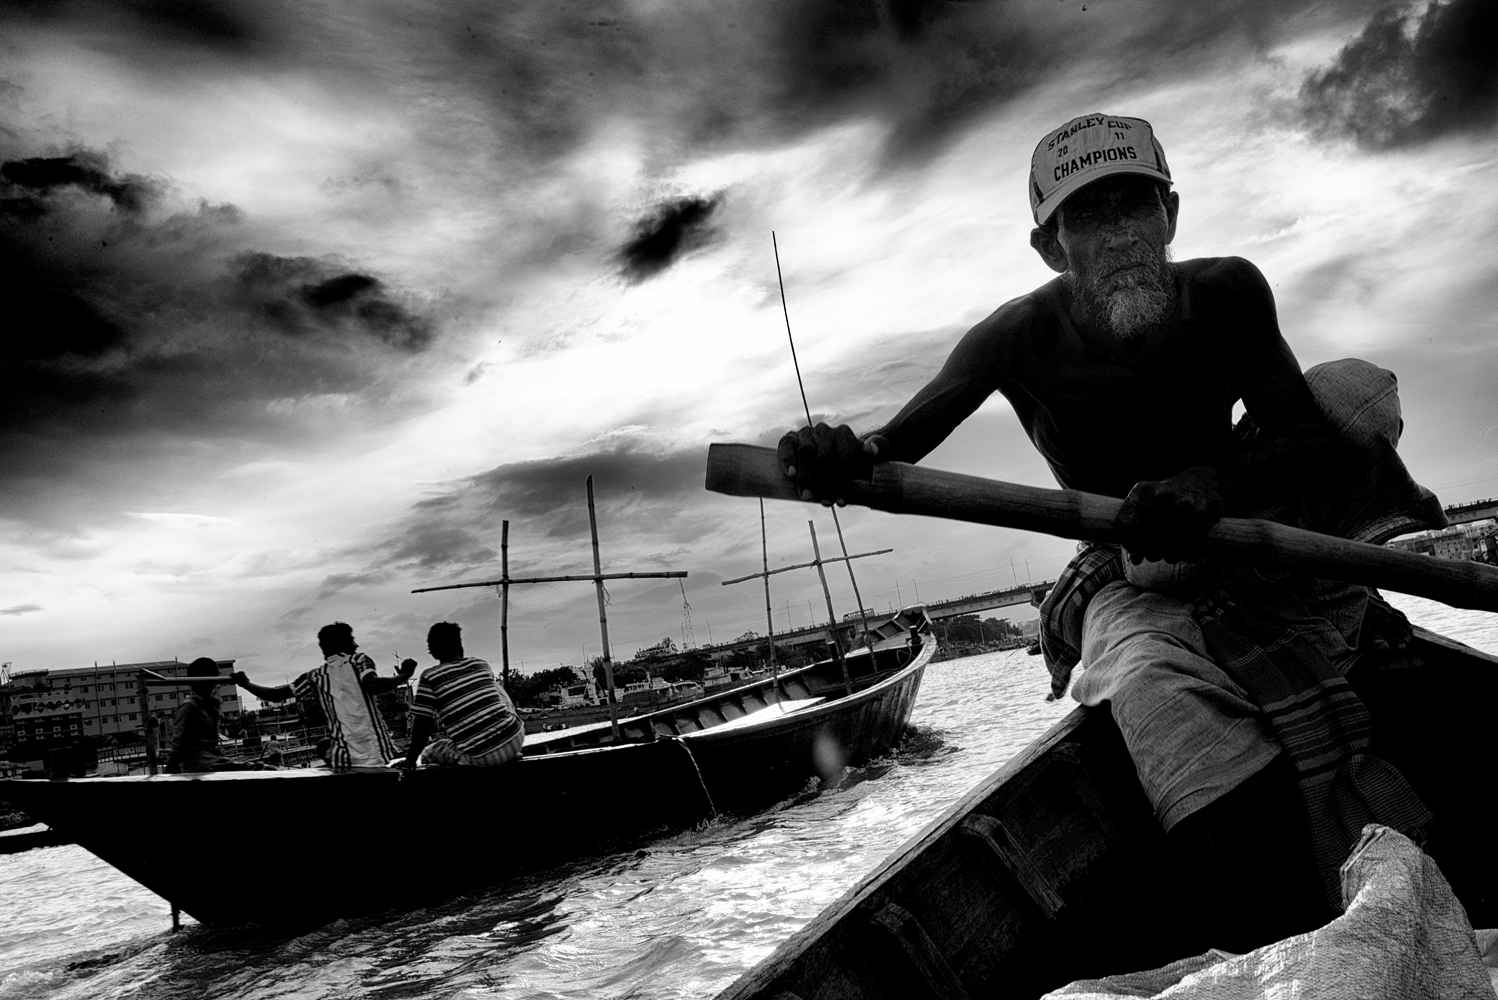 Thousands of small                               boats are used by locals to cross the river daily, Dhaka, Bangladesh.